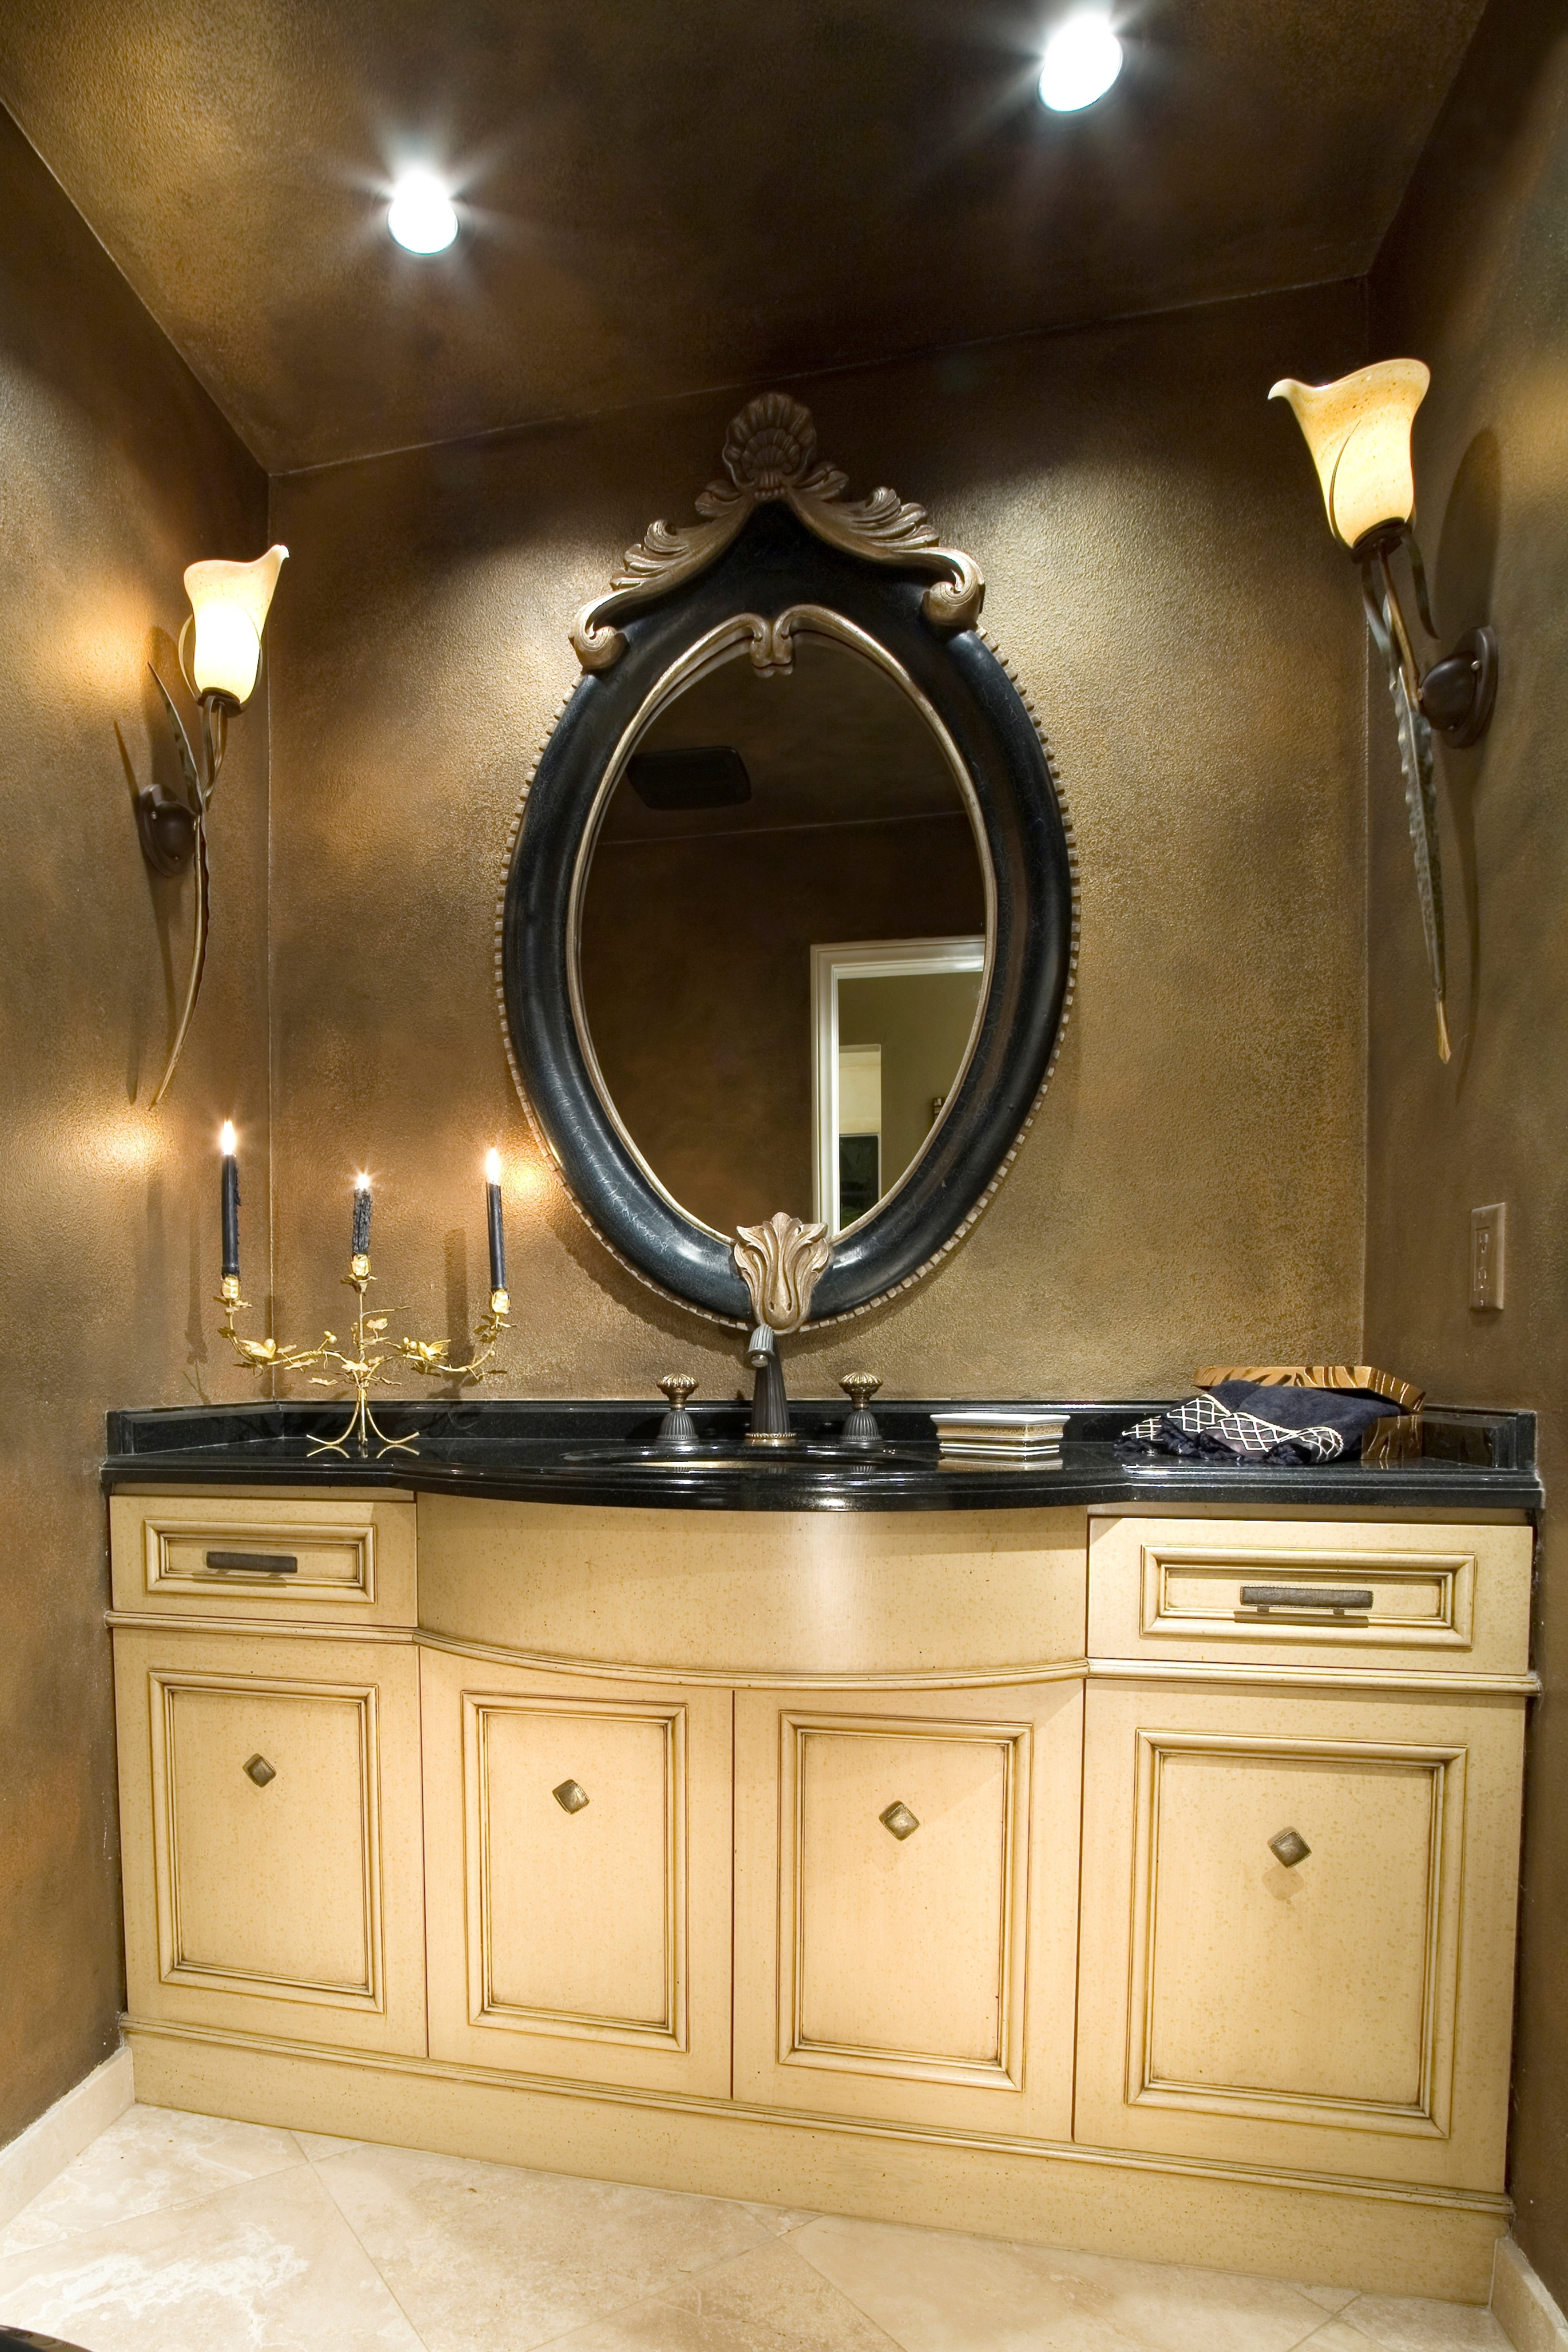 Latest Bronze Bathroom Mirrors Uk Creative Gallery Including Wall Mounted Throughout Wall Mounted Bathroom Chandeliers (View 10 of 15)